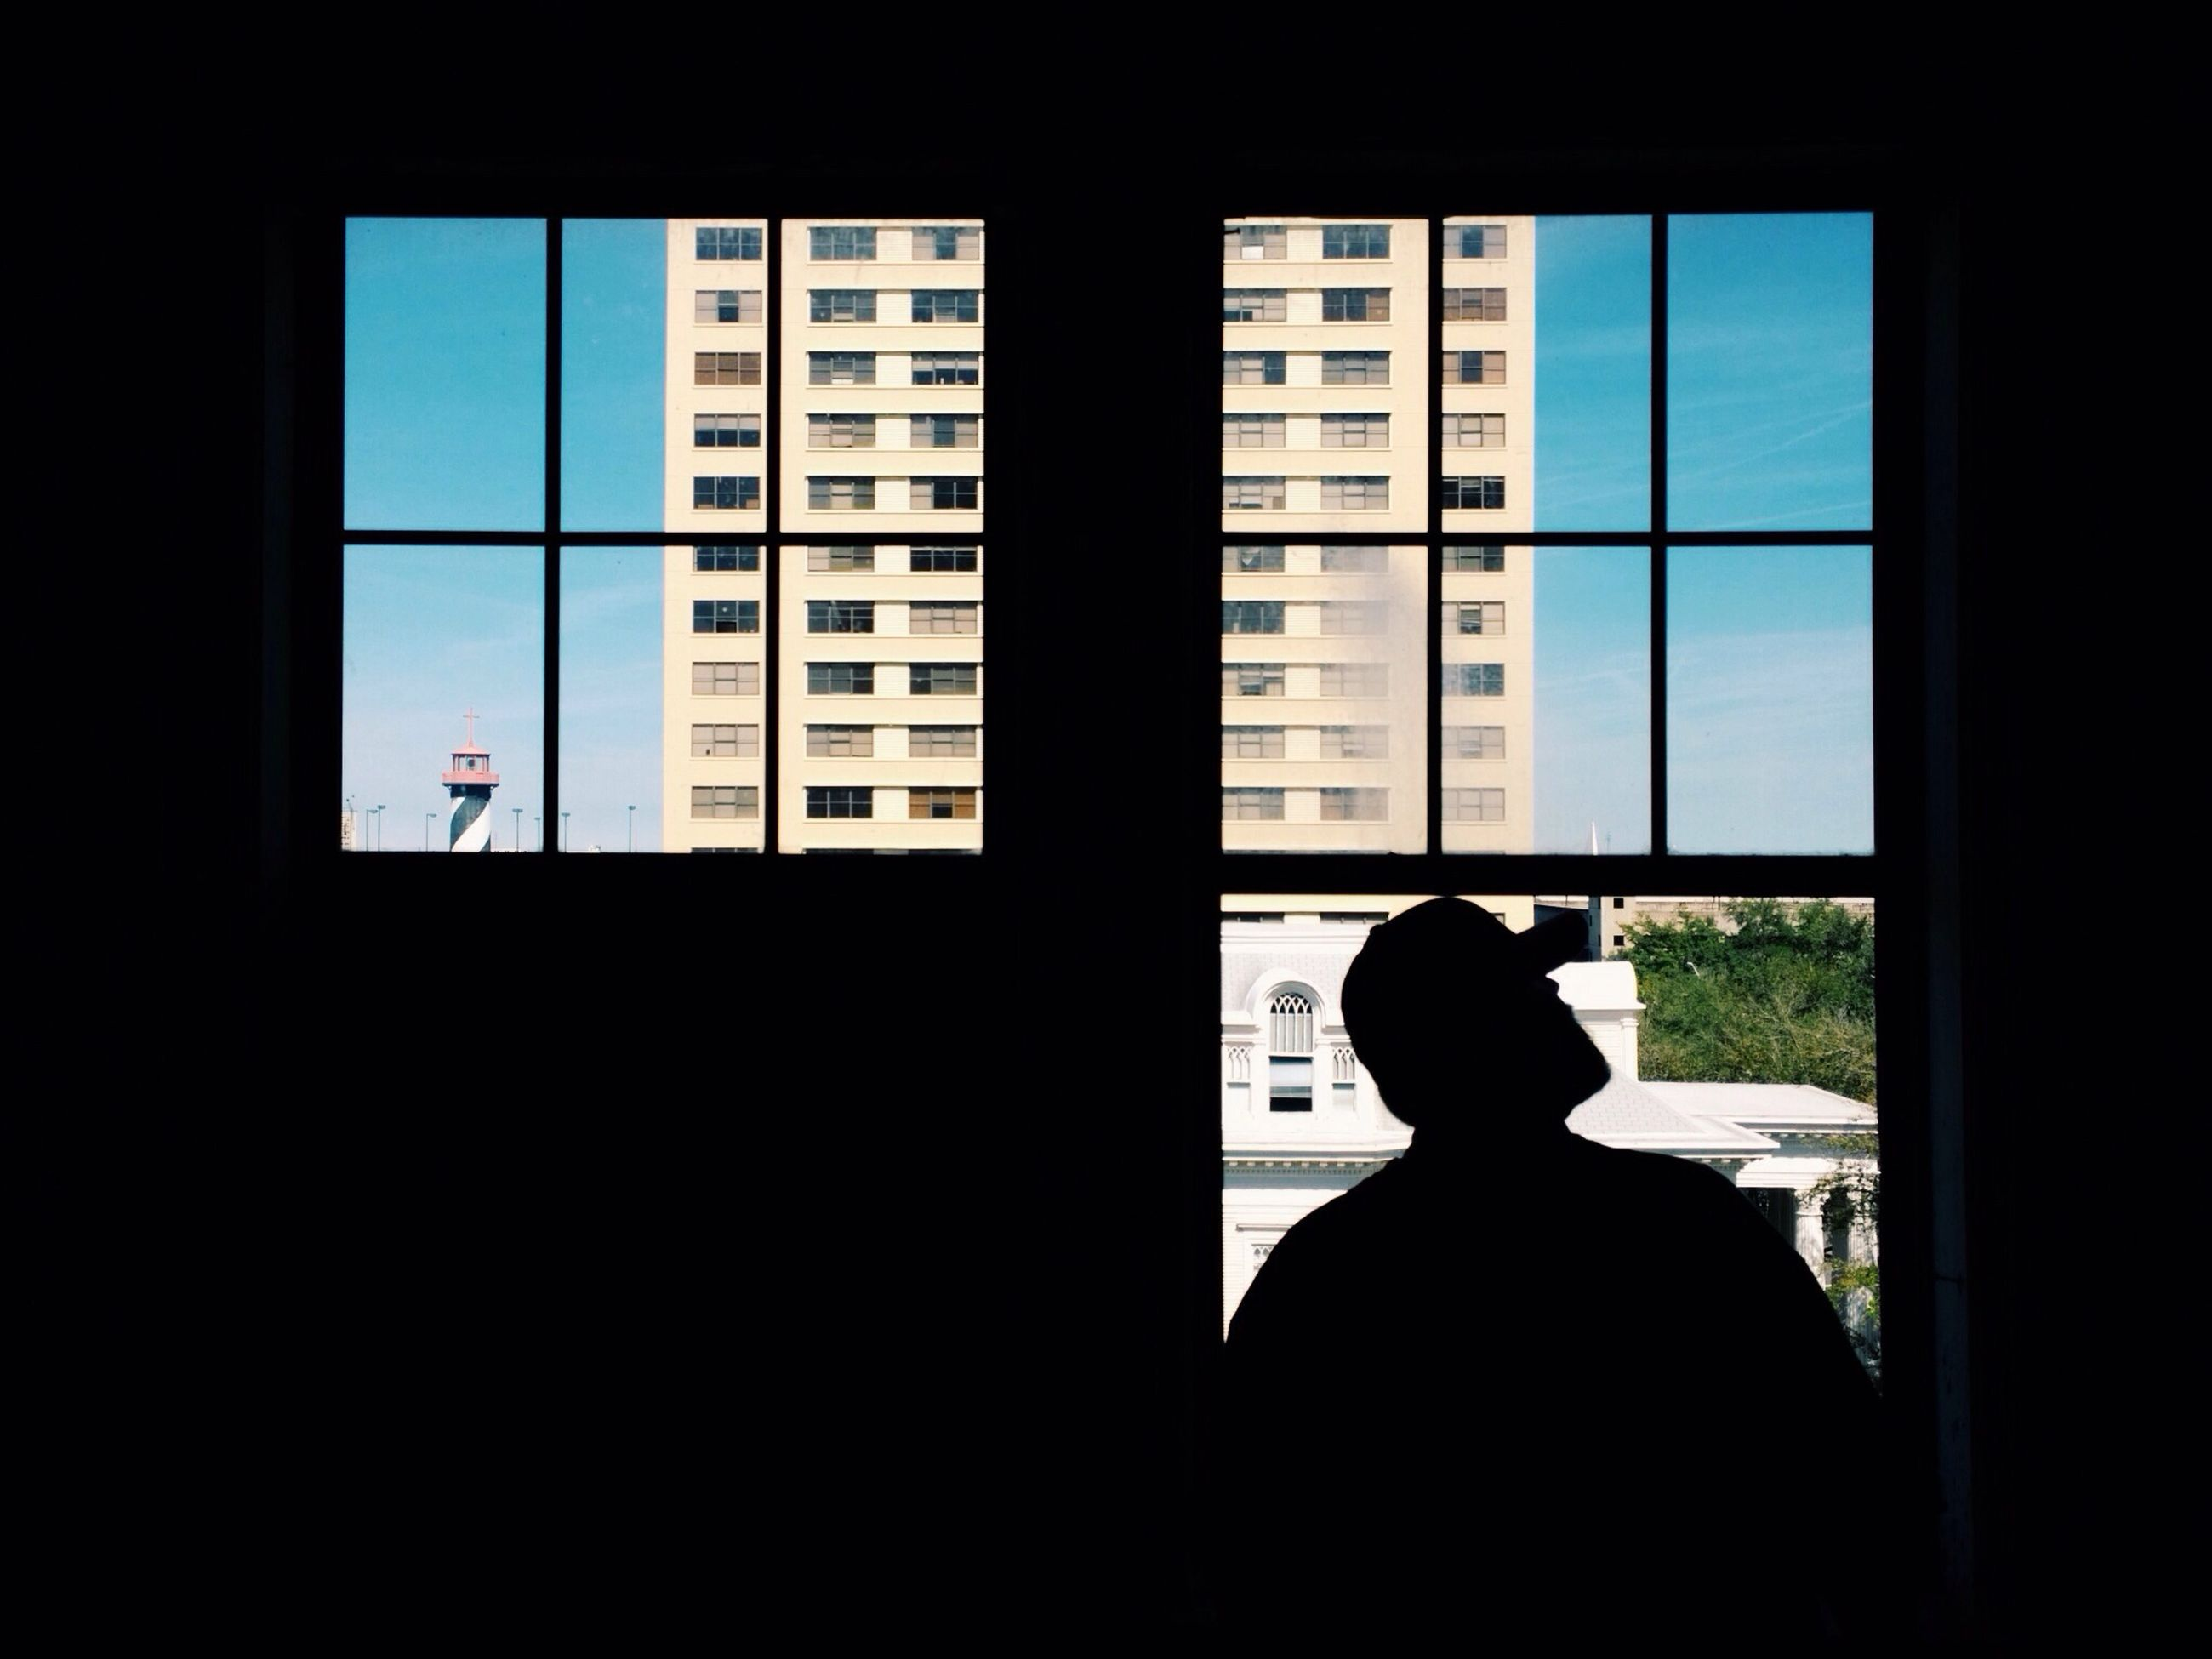 window, indoors, silhouette, glass - material, architecture, transparent, looking through window, built structure, men, building exterior, sitting, dark, city, lifestyles, rear view, home interior, day, glass